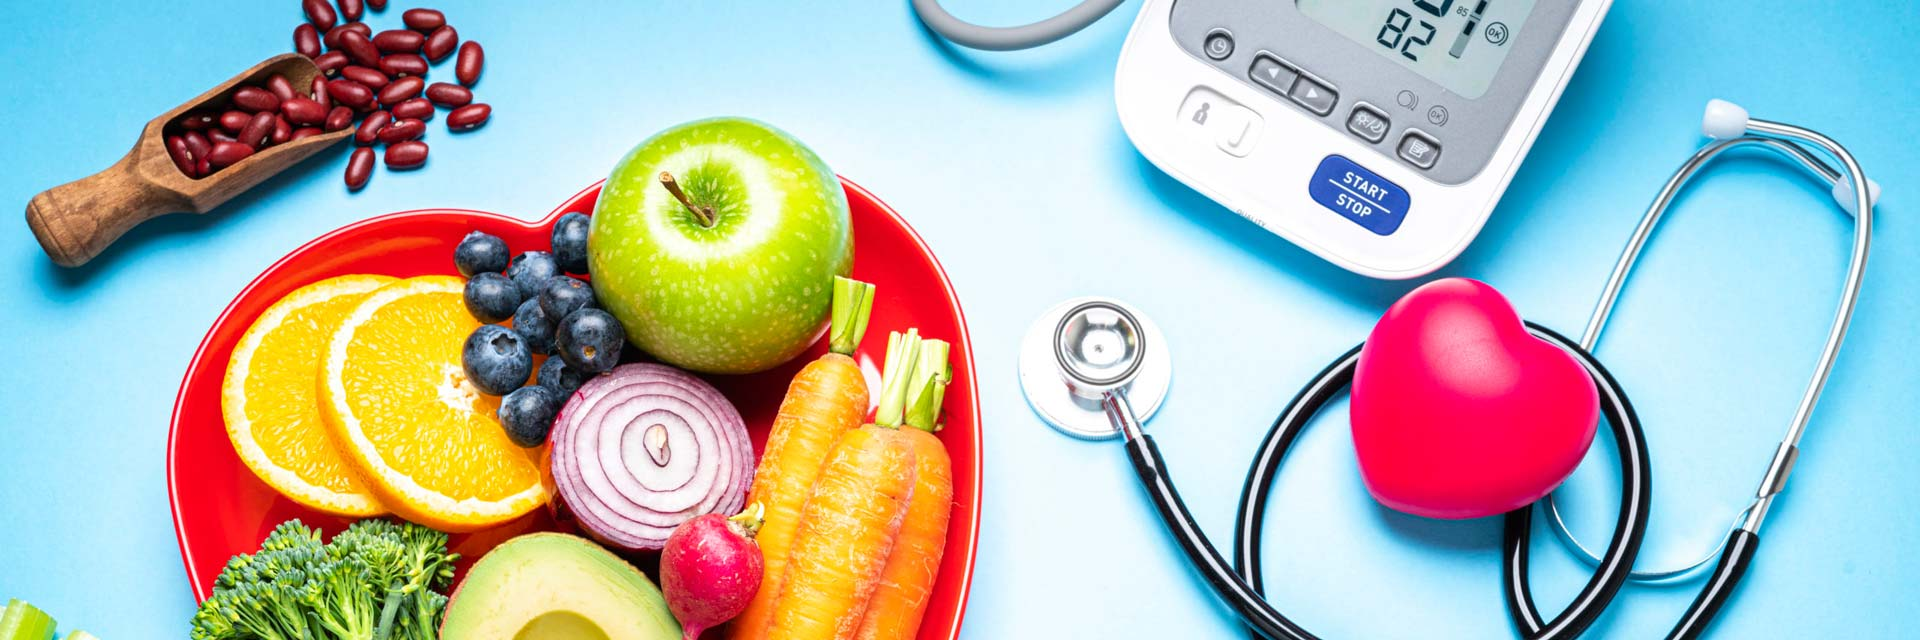 Healthy lifestyle concepts: red heart shape plate with fresh fruits and vegetables shot on blue background. A digital blood pressure monitor, doctor stethoscope